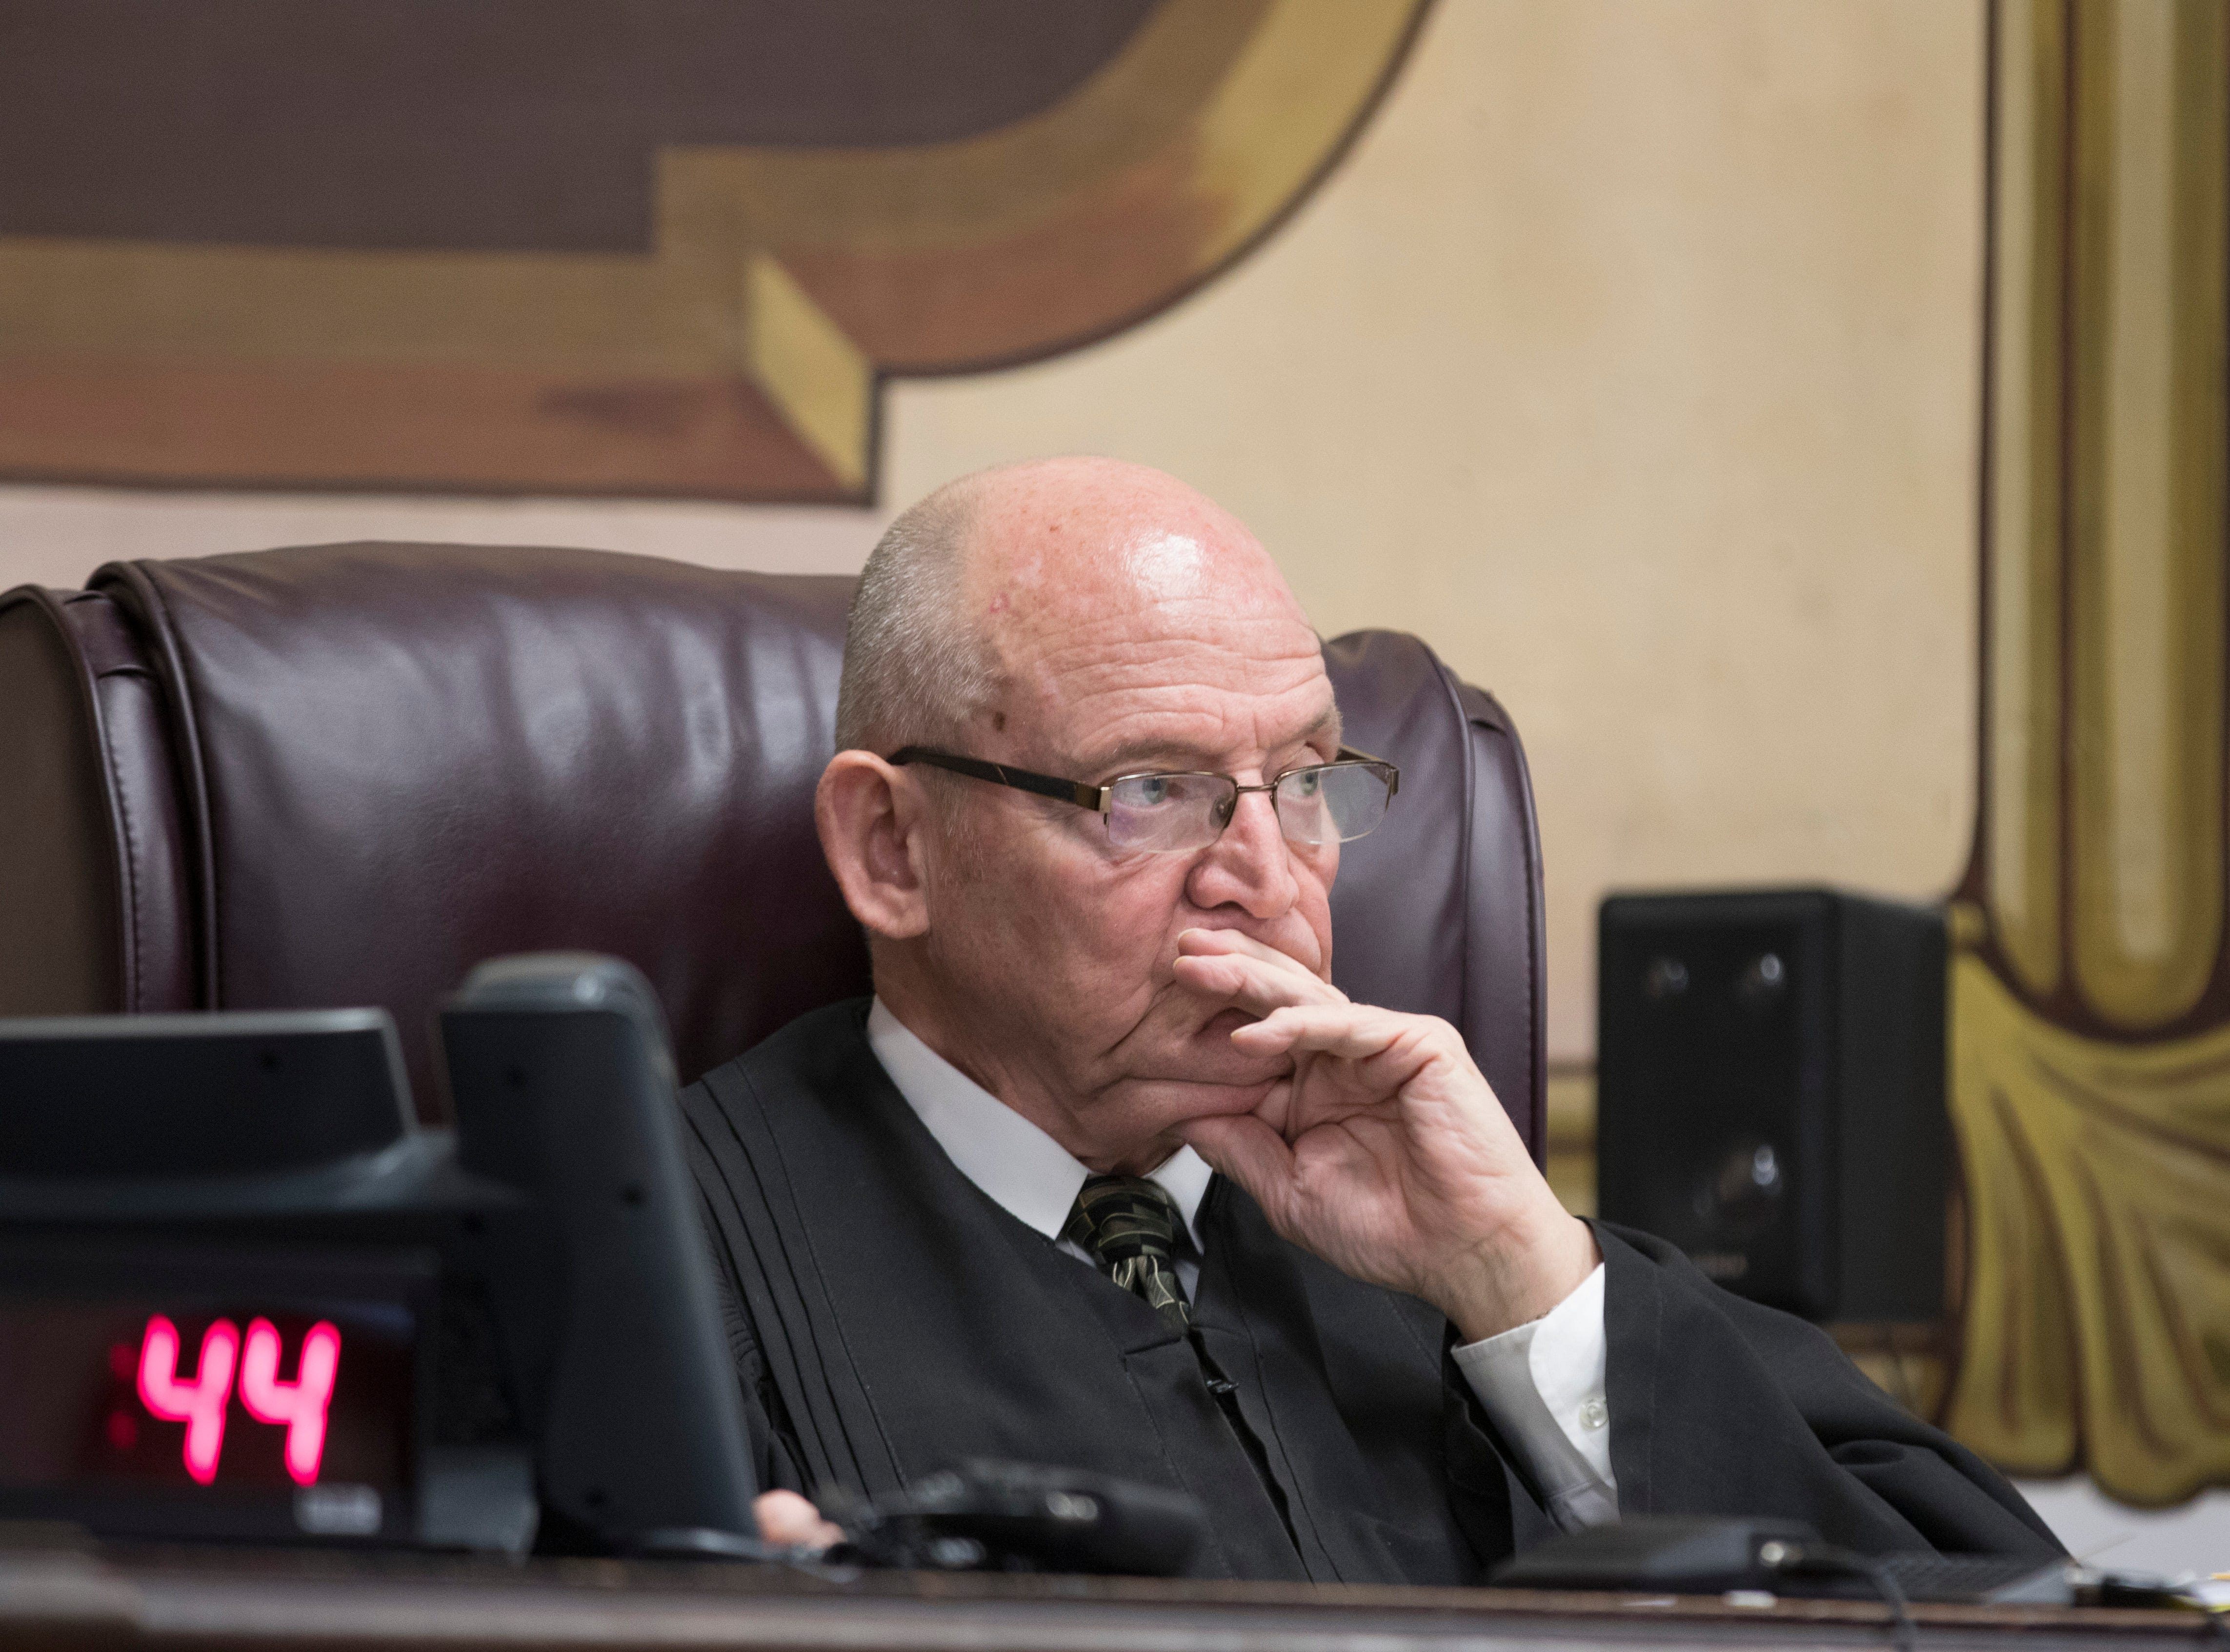 Pike County Common Pleas Judge Randy Deering listens to the arguments given by the prosecution in regard to the charges concerning Fredericka Wagner Thursday afternoon in Waverly, Ohio.